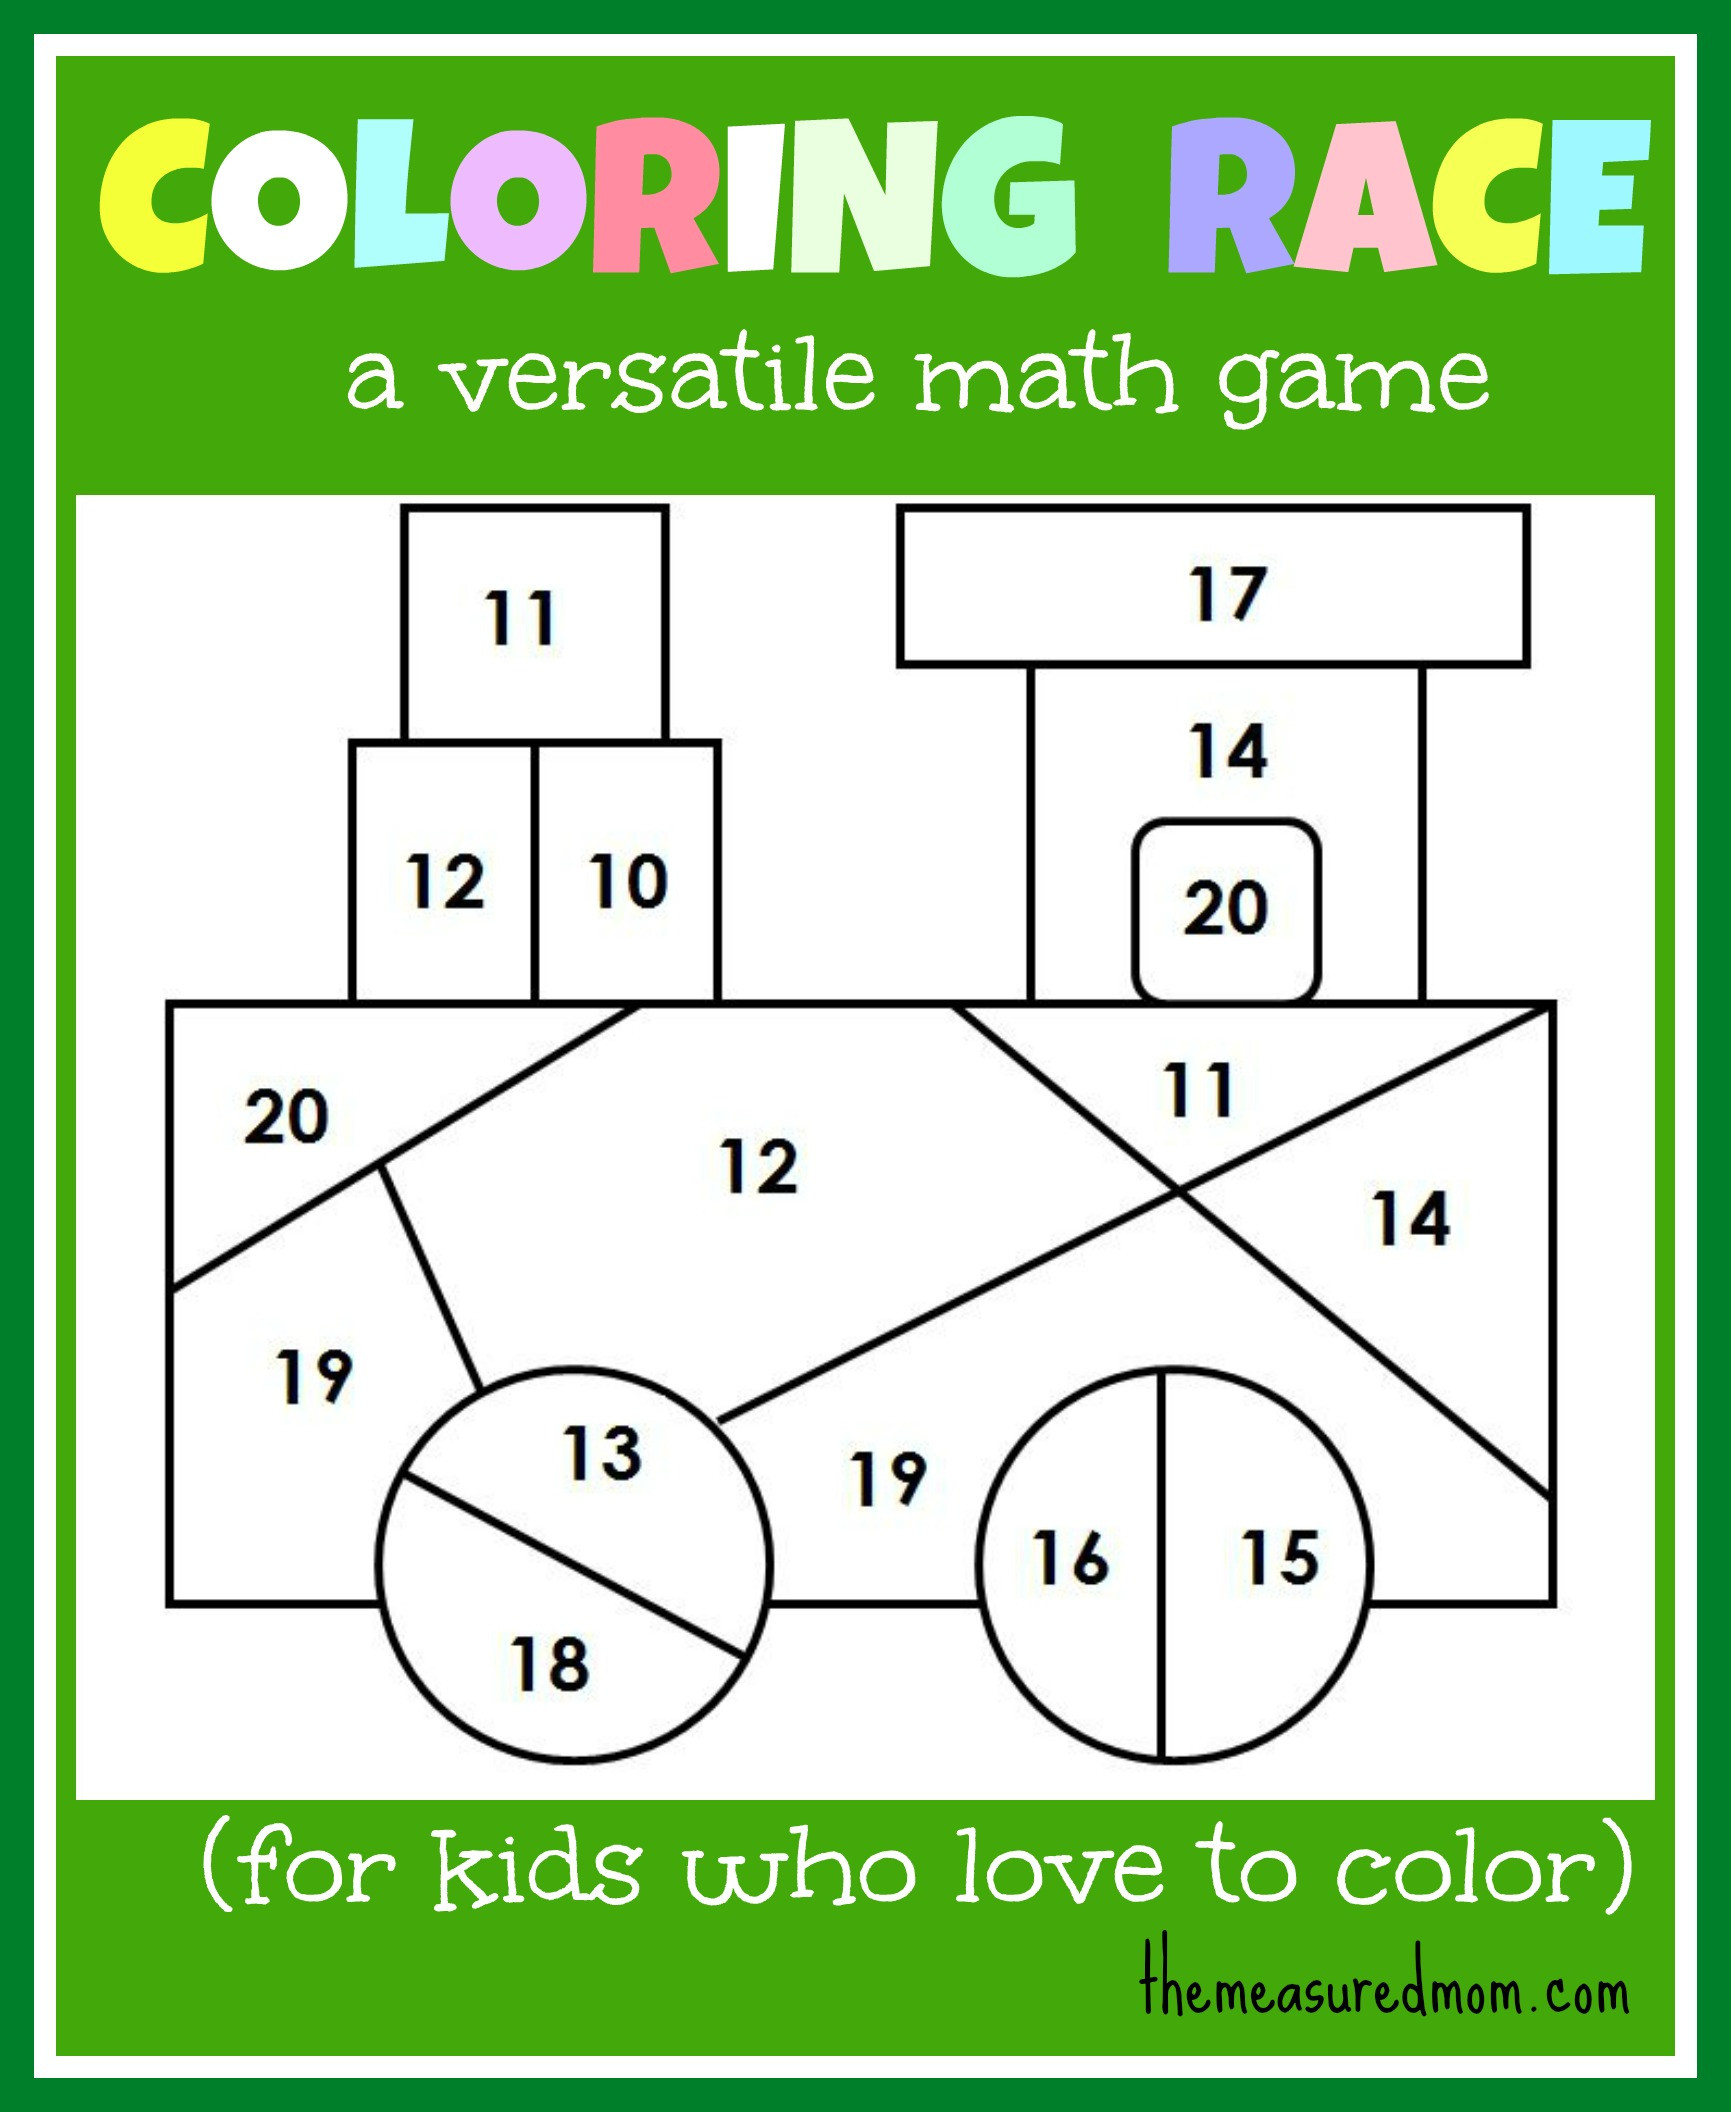 Coloring Pages For Kids Games  Math game for kids Coloring Race bines math and